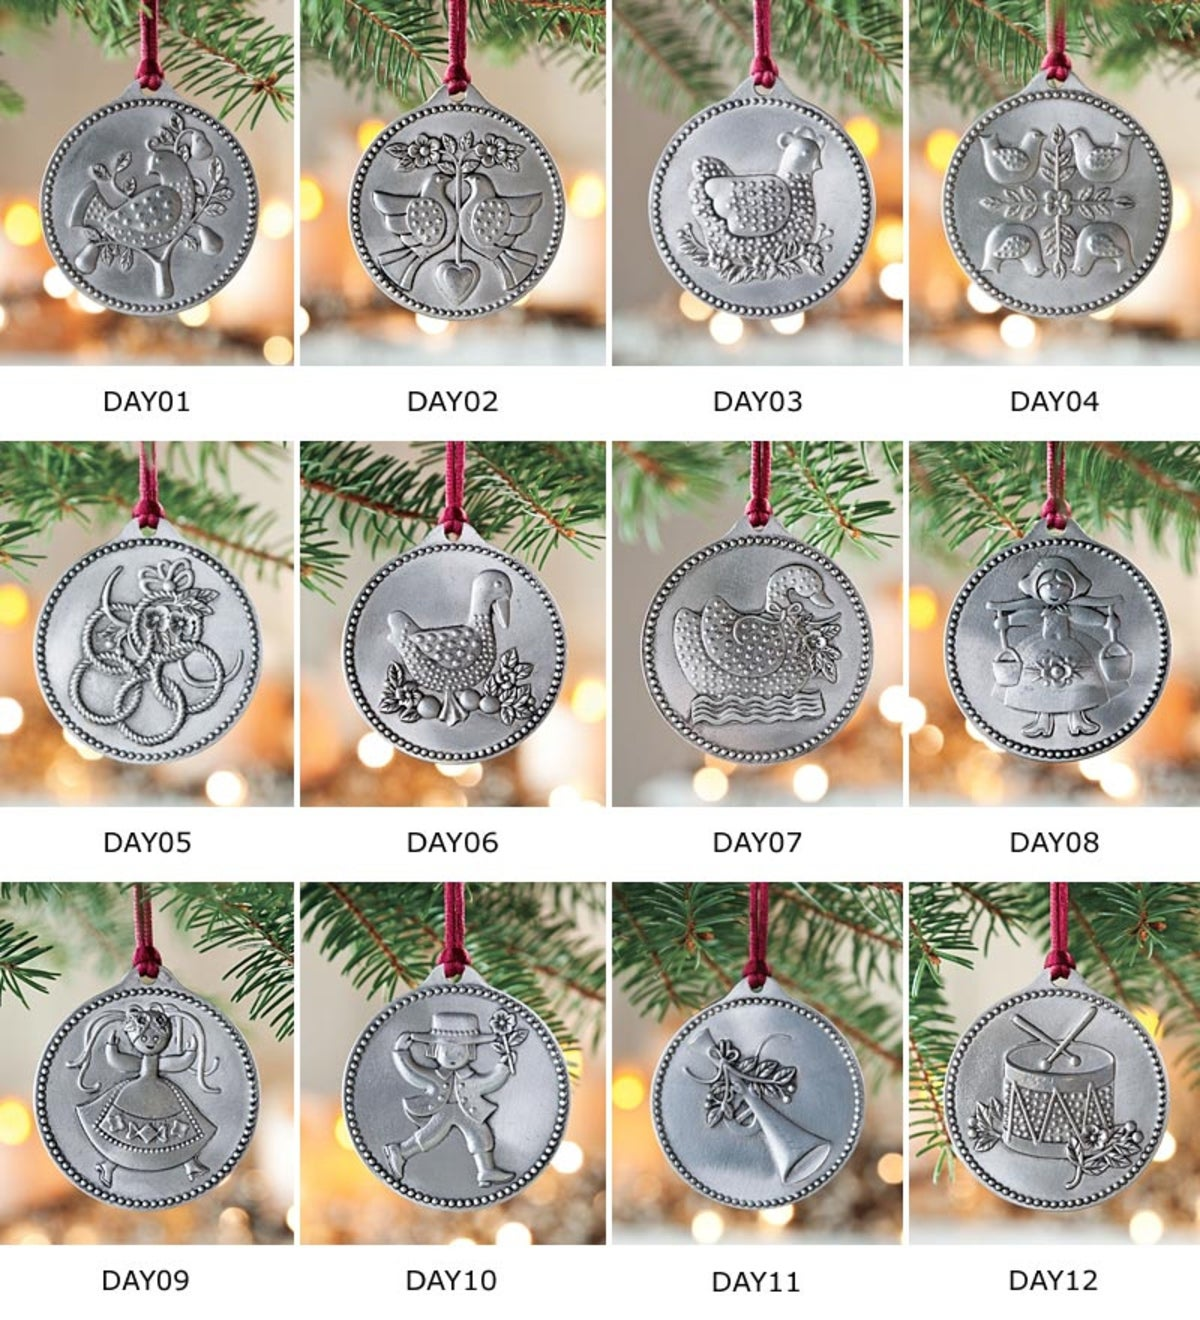 12 days of christmas pewter ornaments set of 12